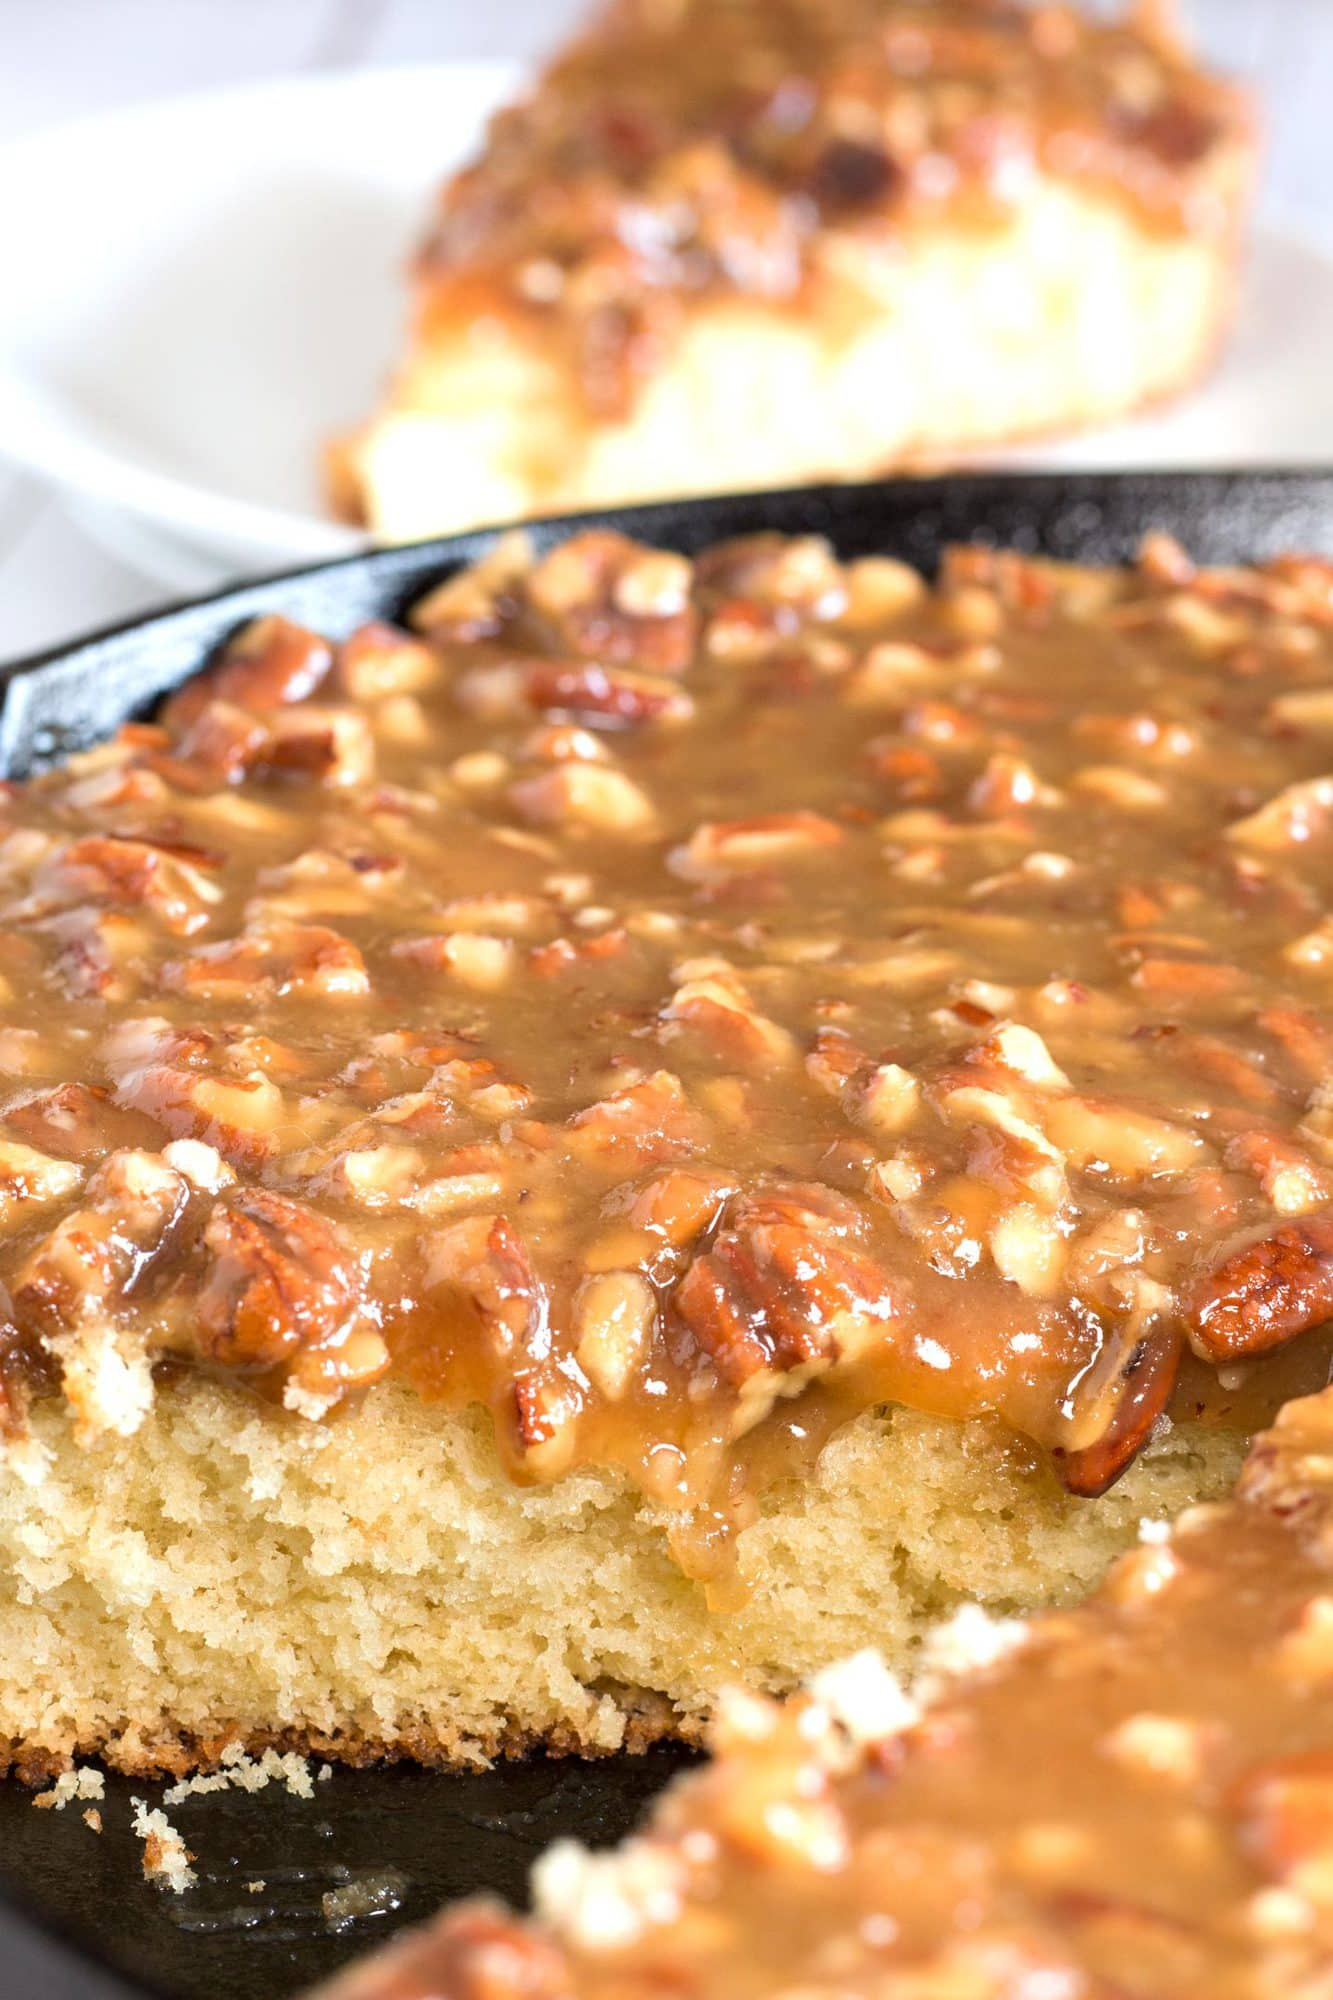 Inside of the best cast iron skillet cake with drippy praline topping